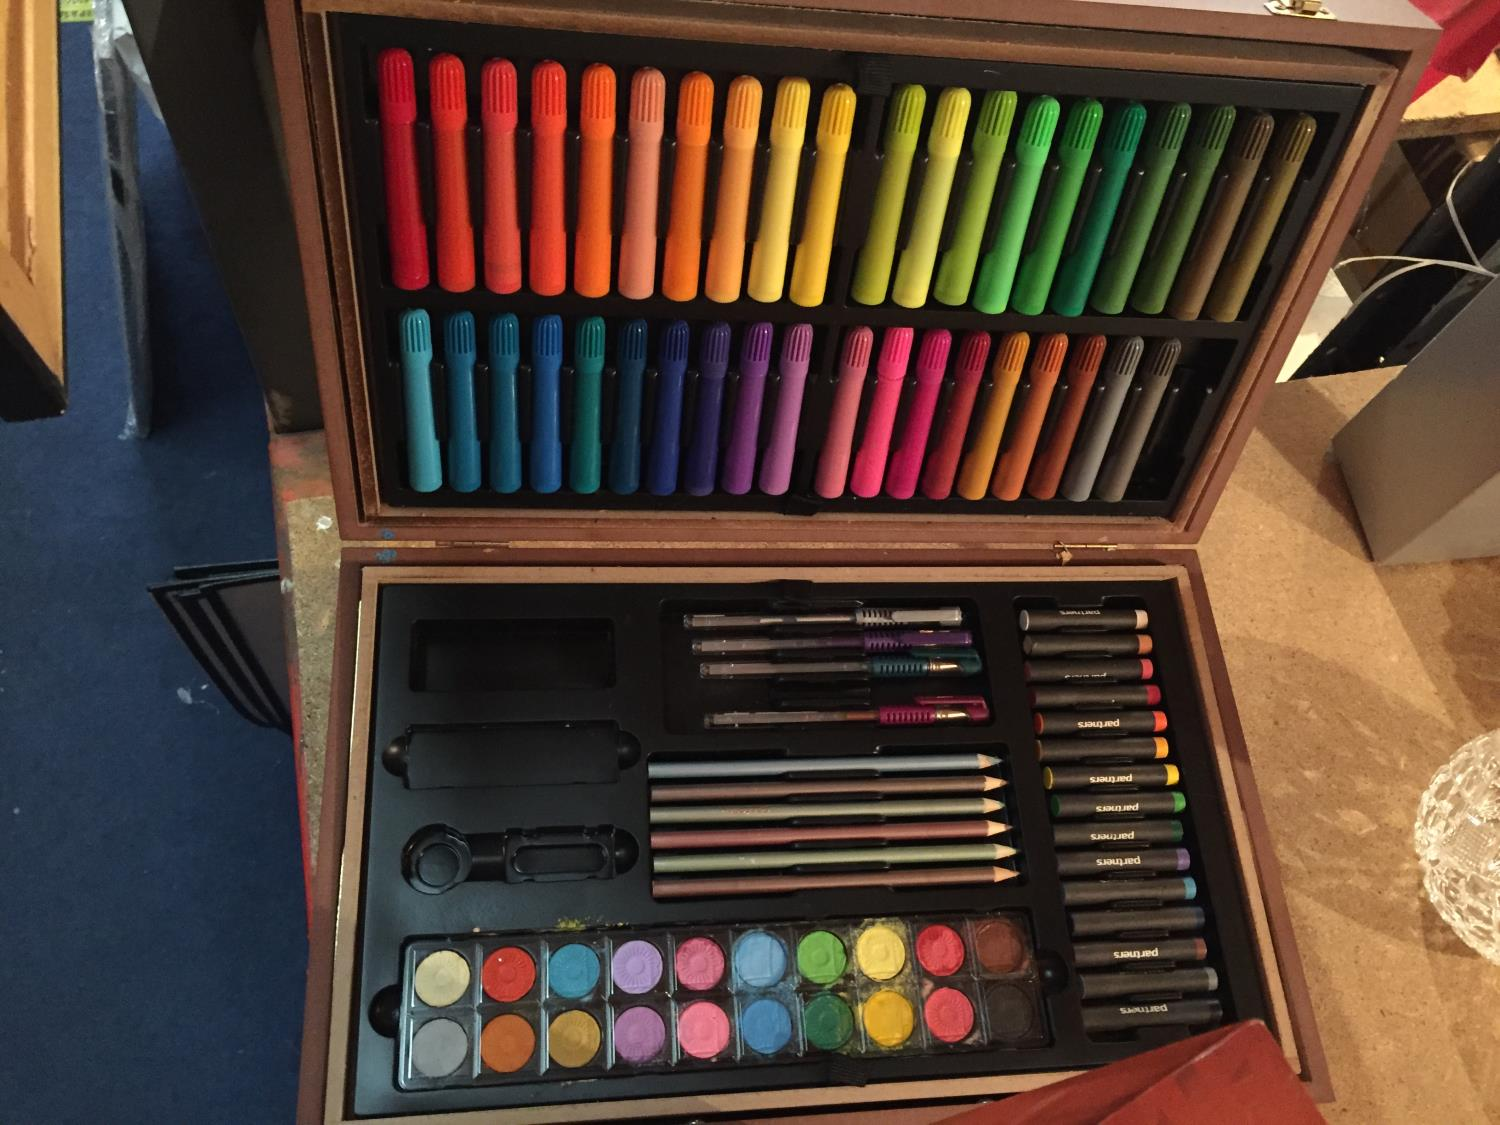 TWO CASES OF ART SUPPLIES TO INCLUDE FELT TIPS, PENCILS, OIL PAINTS ETC - Image 5 of 12